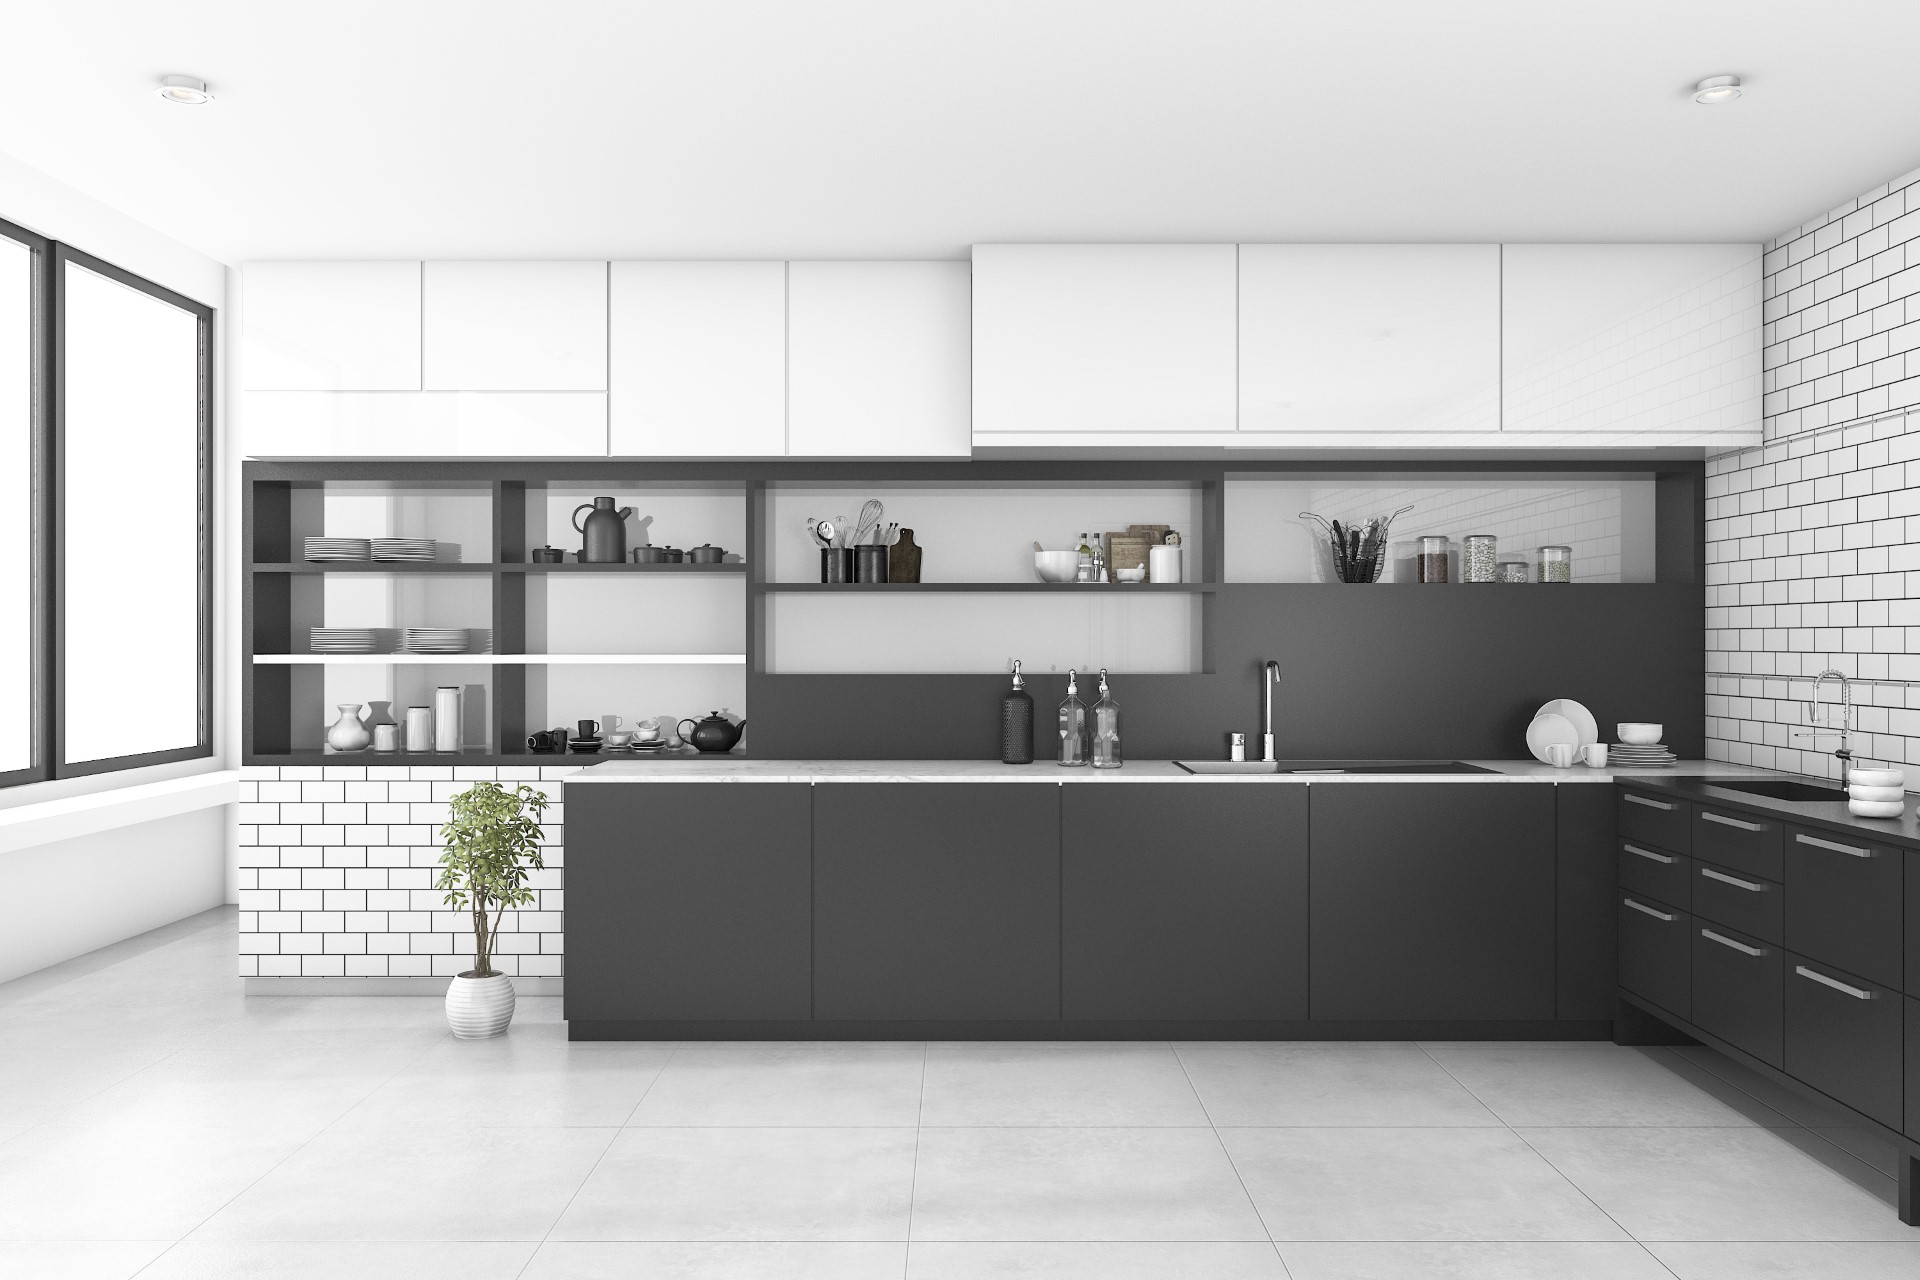 For someone who wants that bold entryway to the cooking environment, this is the aggressive style you need. All the dishes readily on display, no more shuffling through cabinets to find what you need. This minimalist design carries the bear functionalities of the common kitchen.